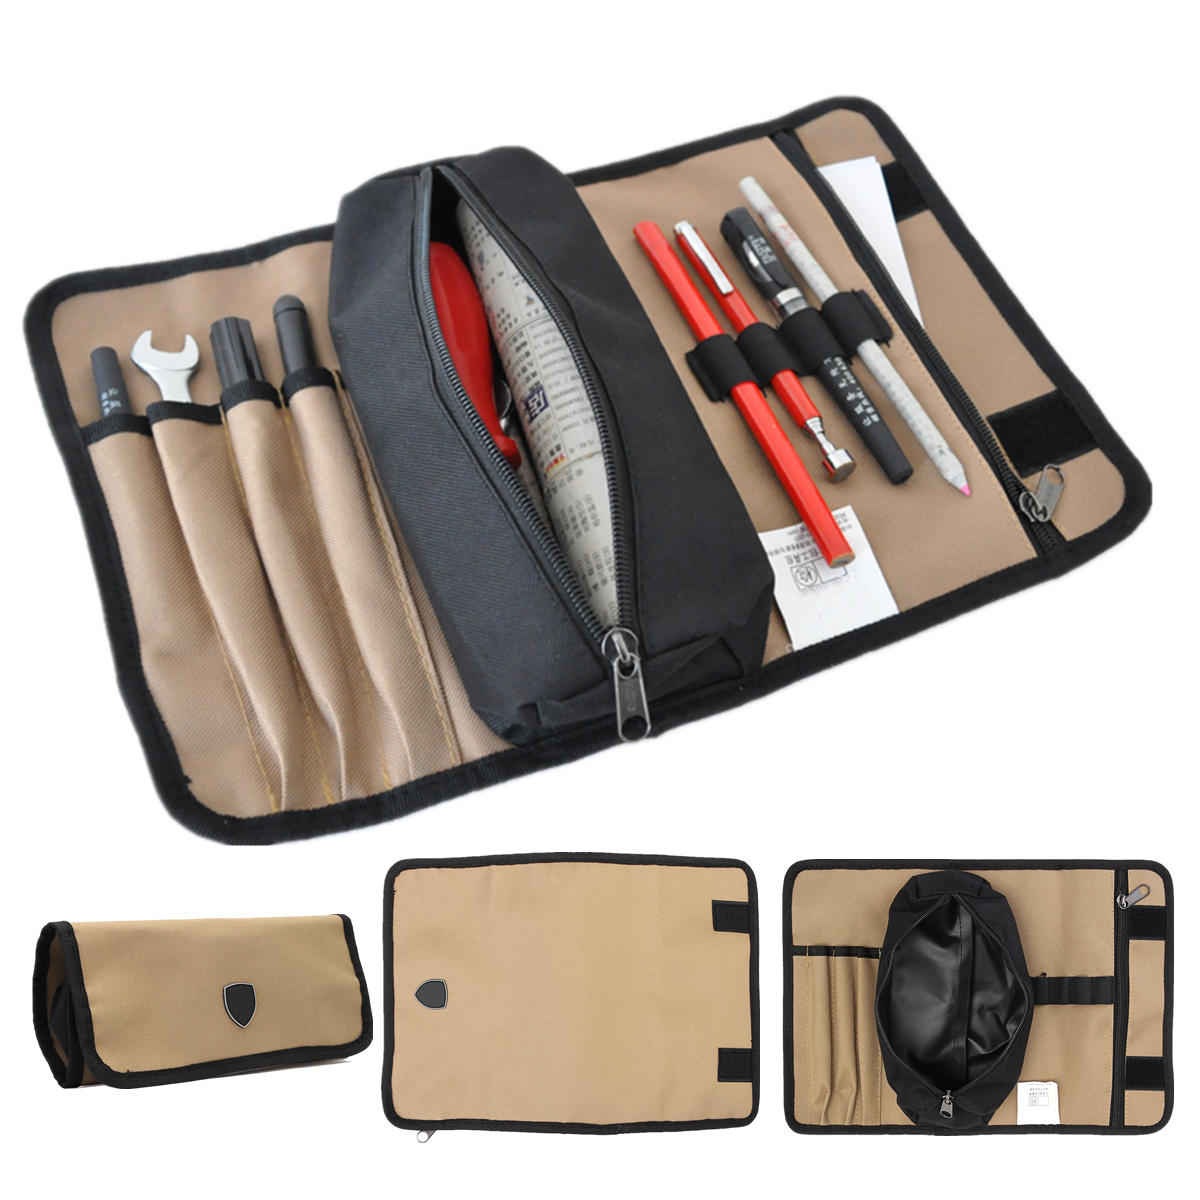 Tool Bags Symbol Of The Brand Storage Canvas Hardware Tool Bag Electrician Drill Nails Hand Pouch Organizer Screws Bit Parts